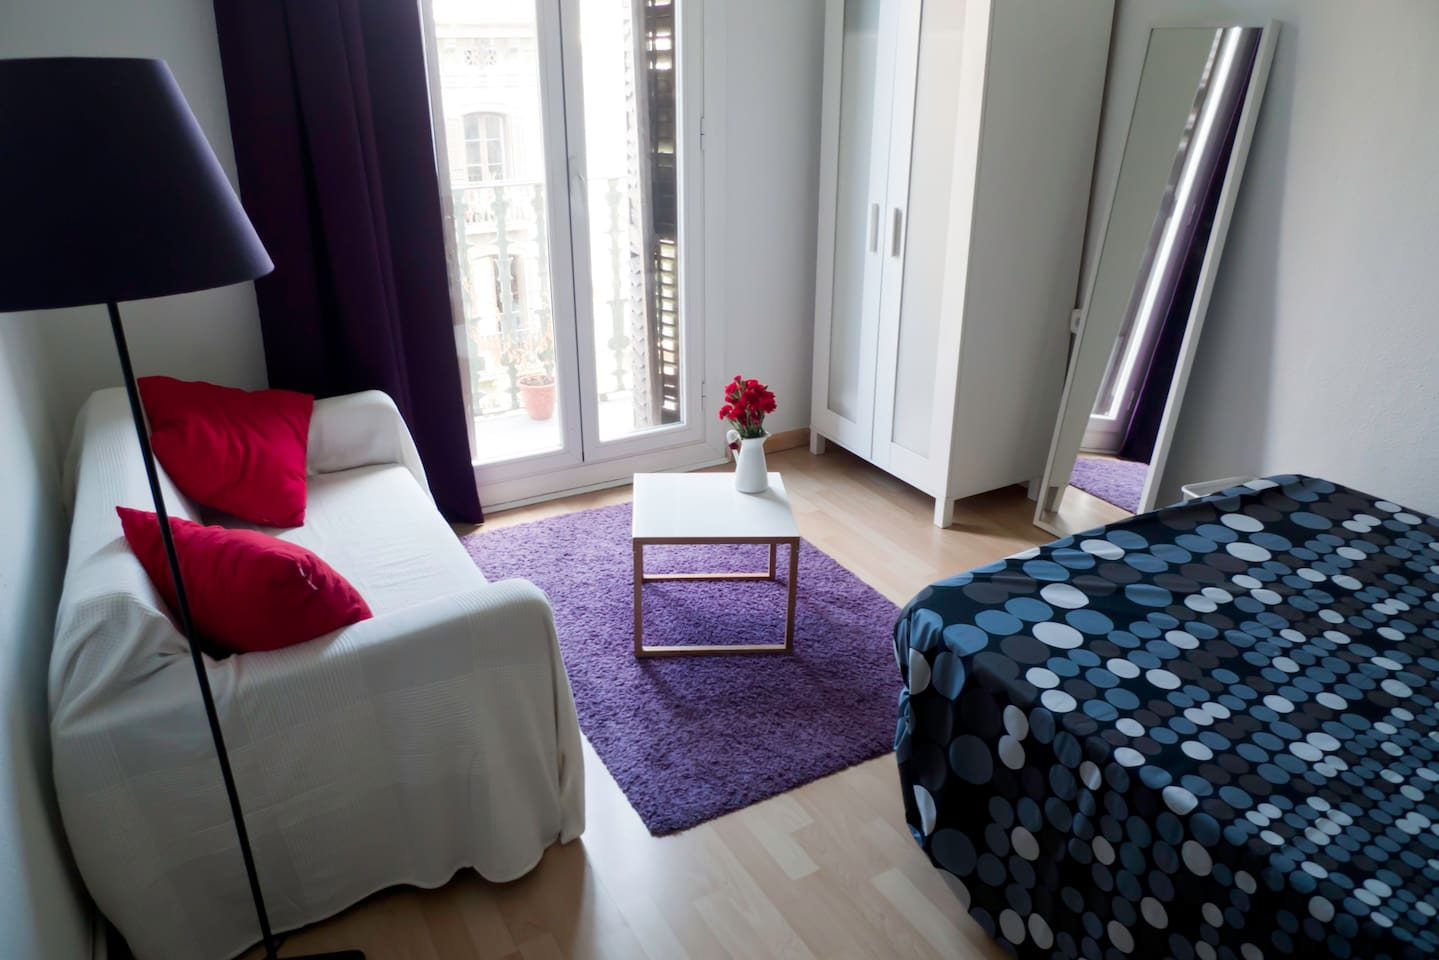 BCN center, spacious and sunny room